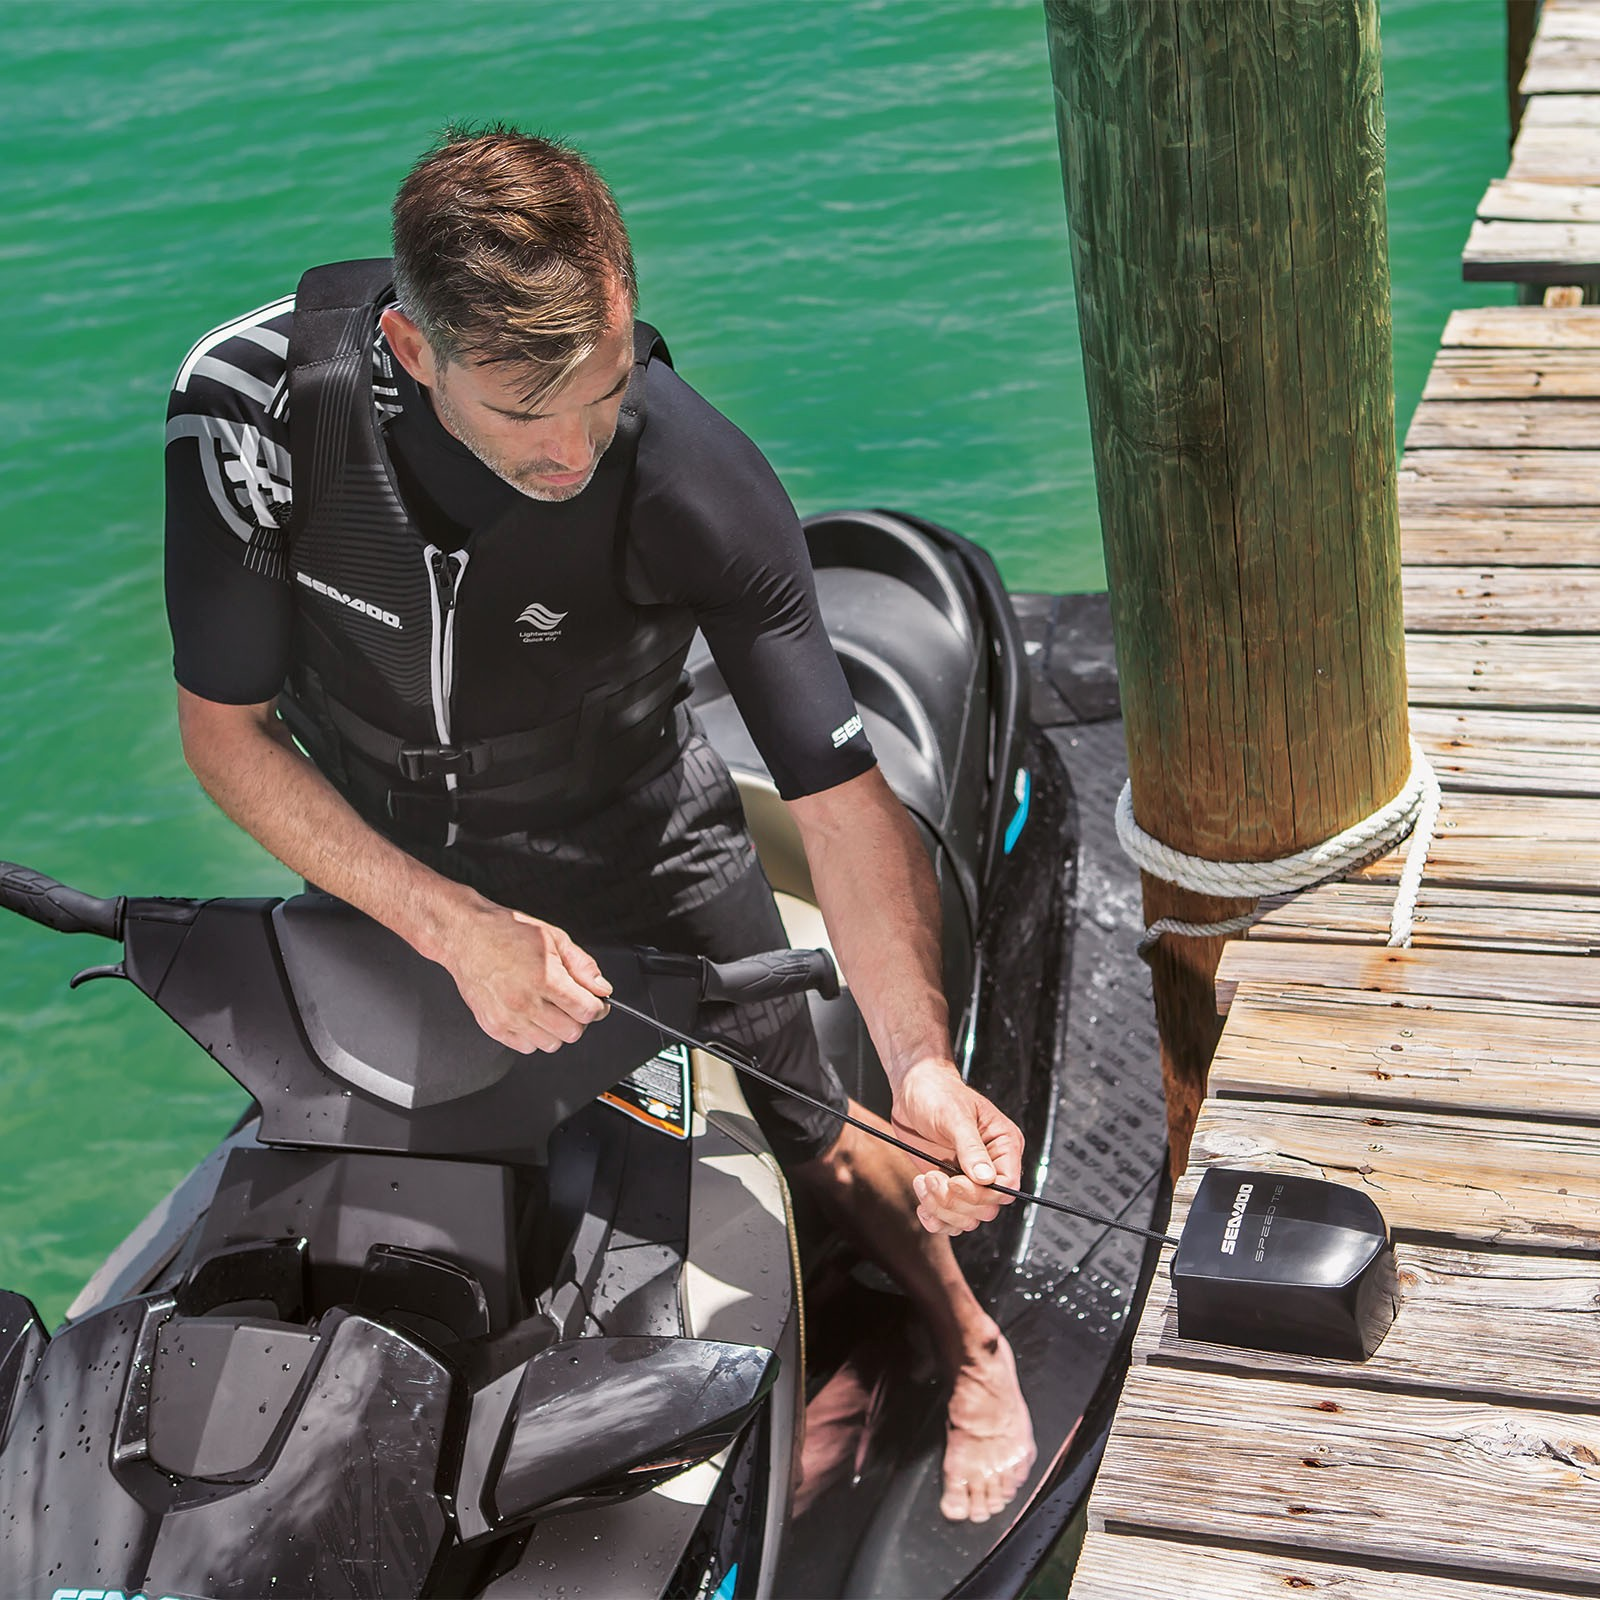 Details about SEA-DOO SPEED TIE FOR DOCK #295100336